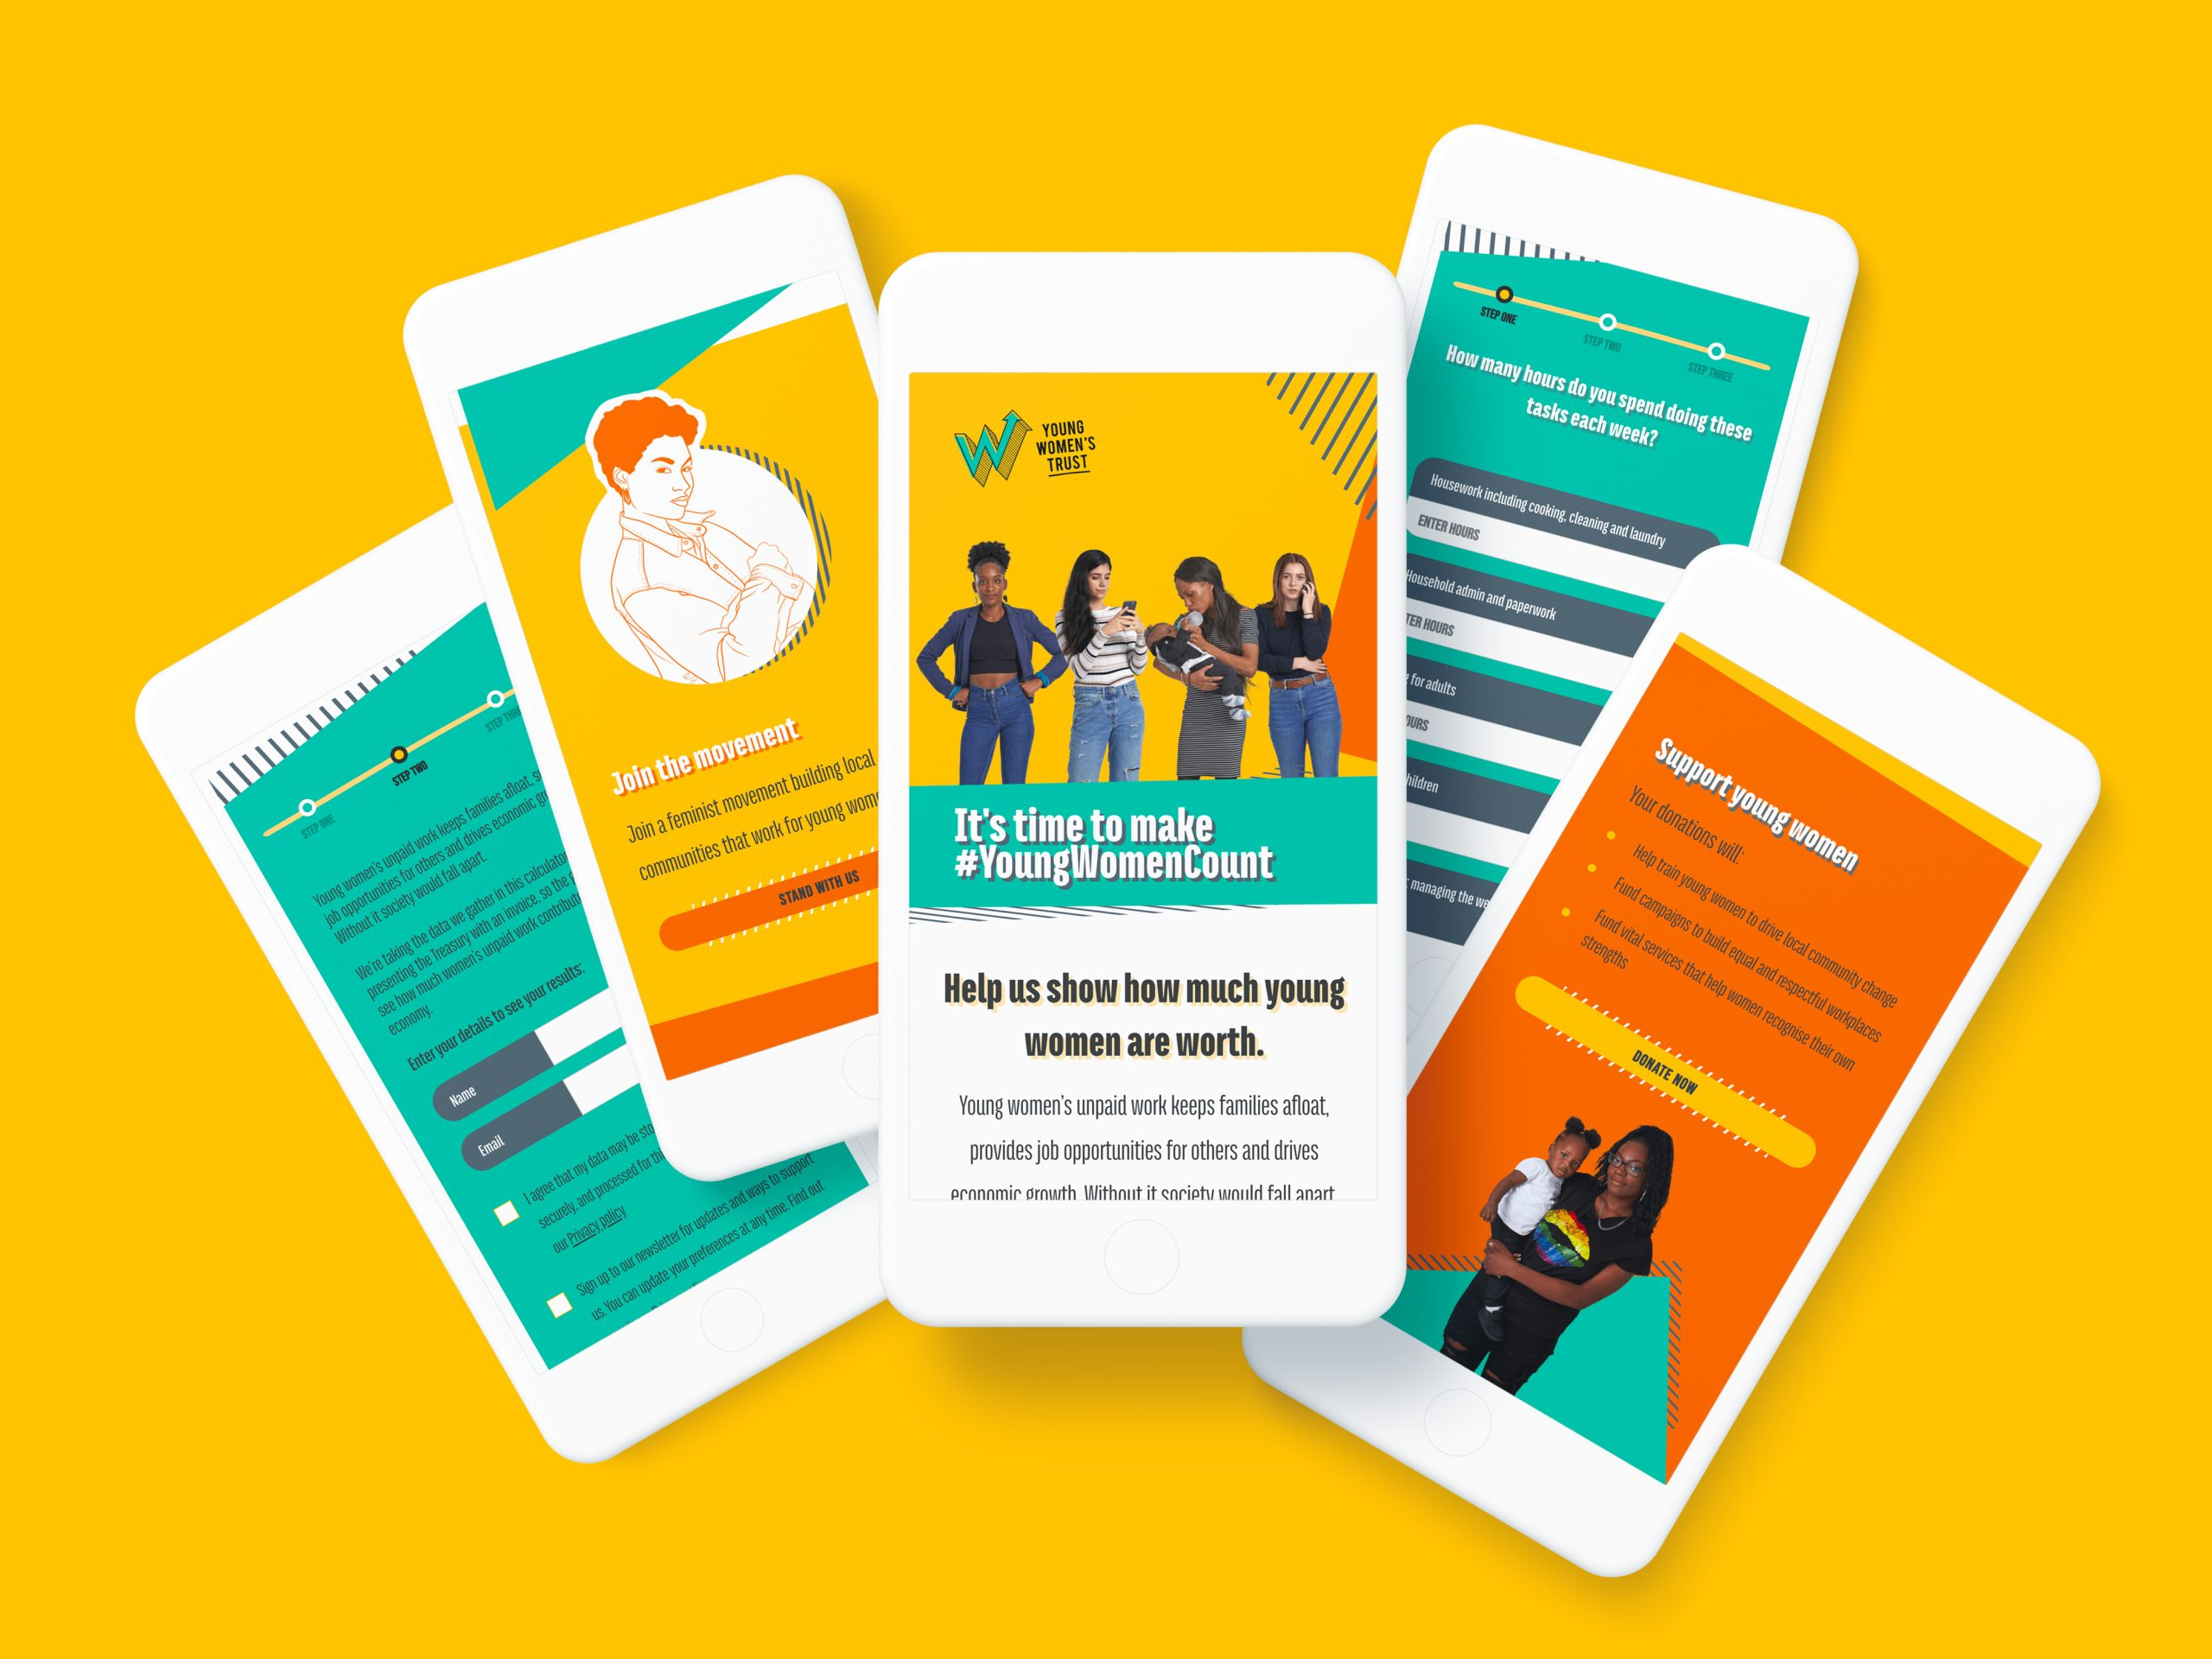 The Young Women Count campaign site on mobile devices